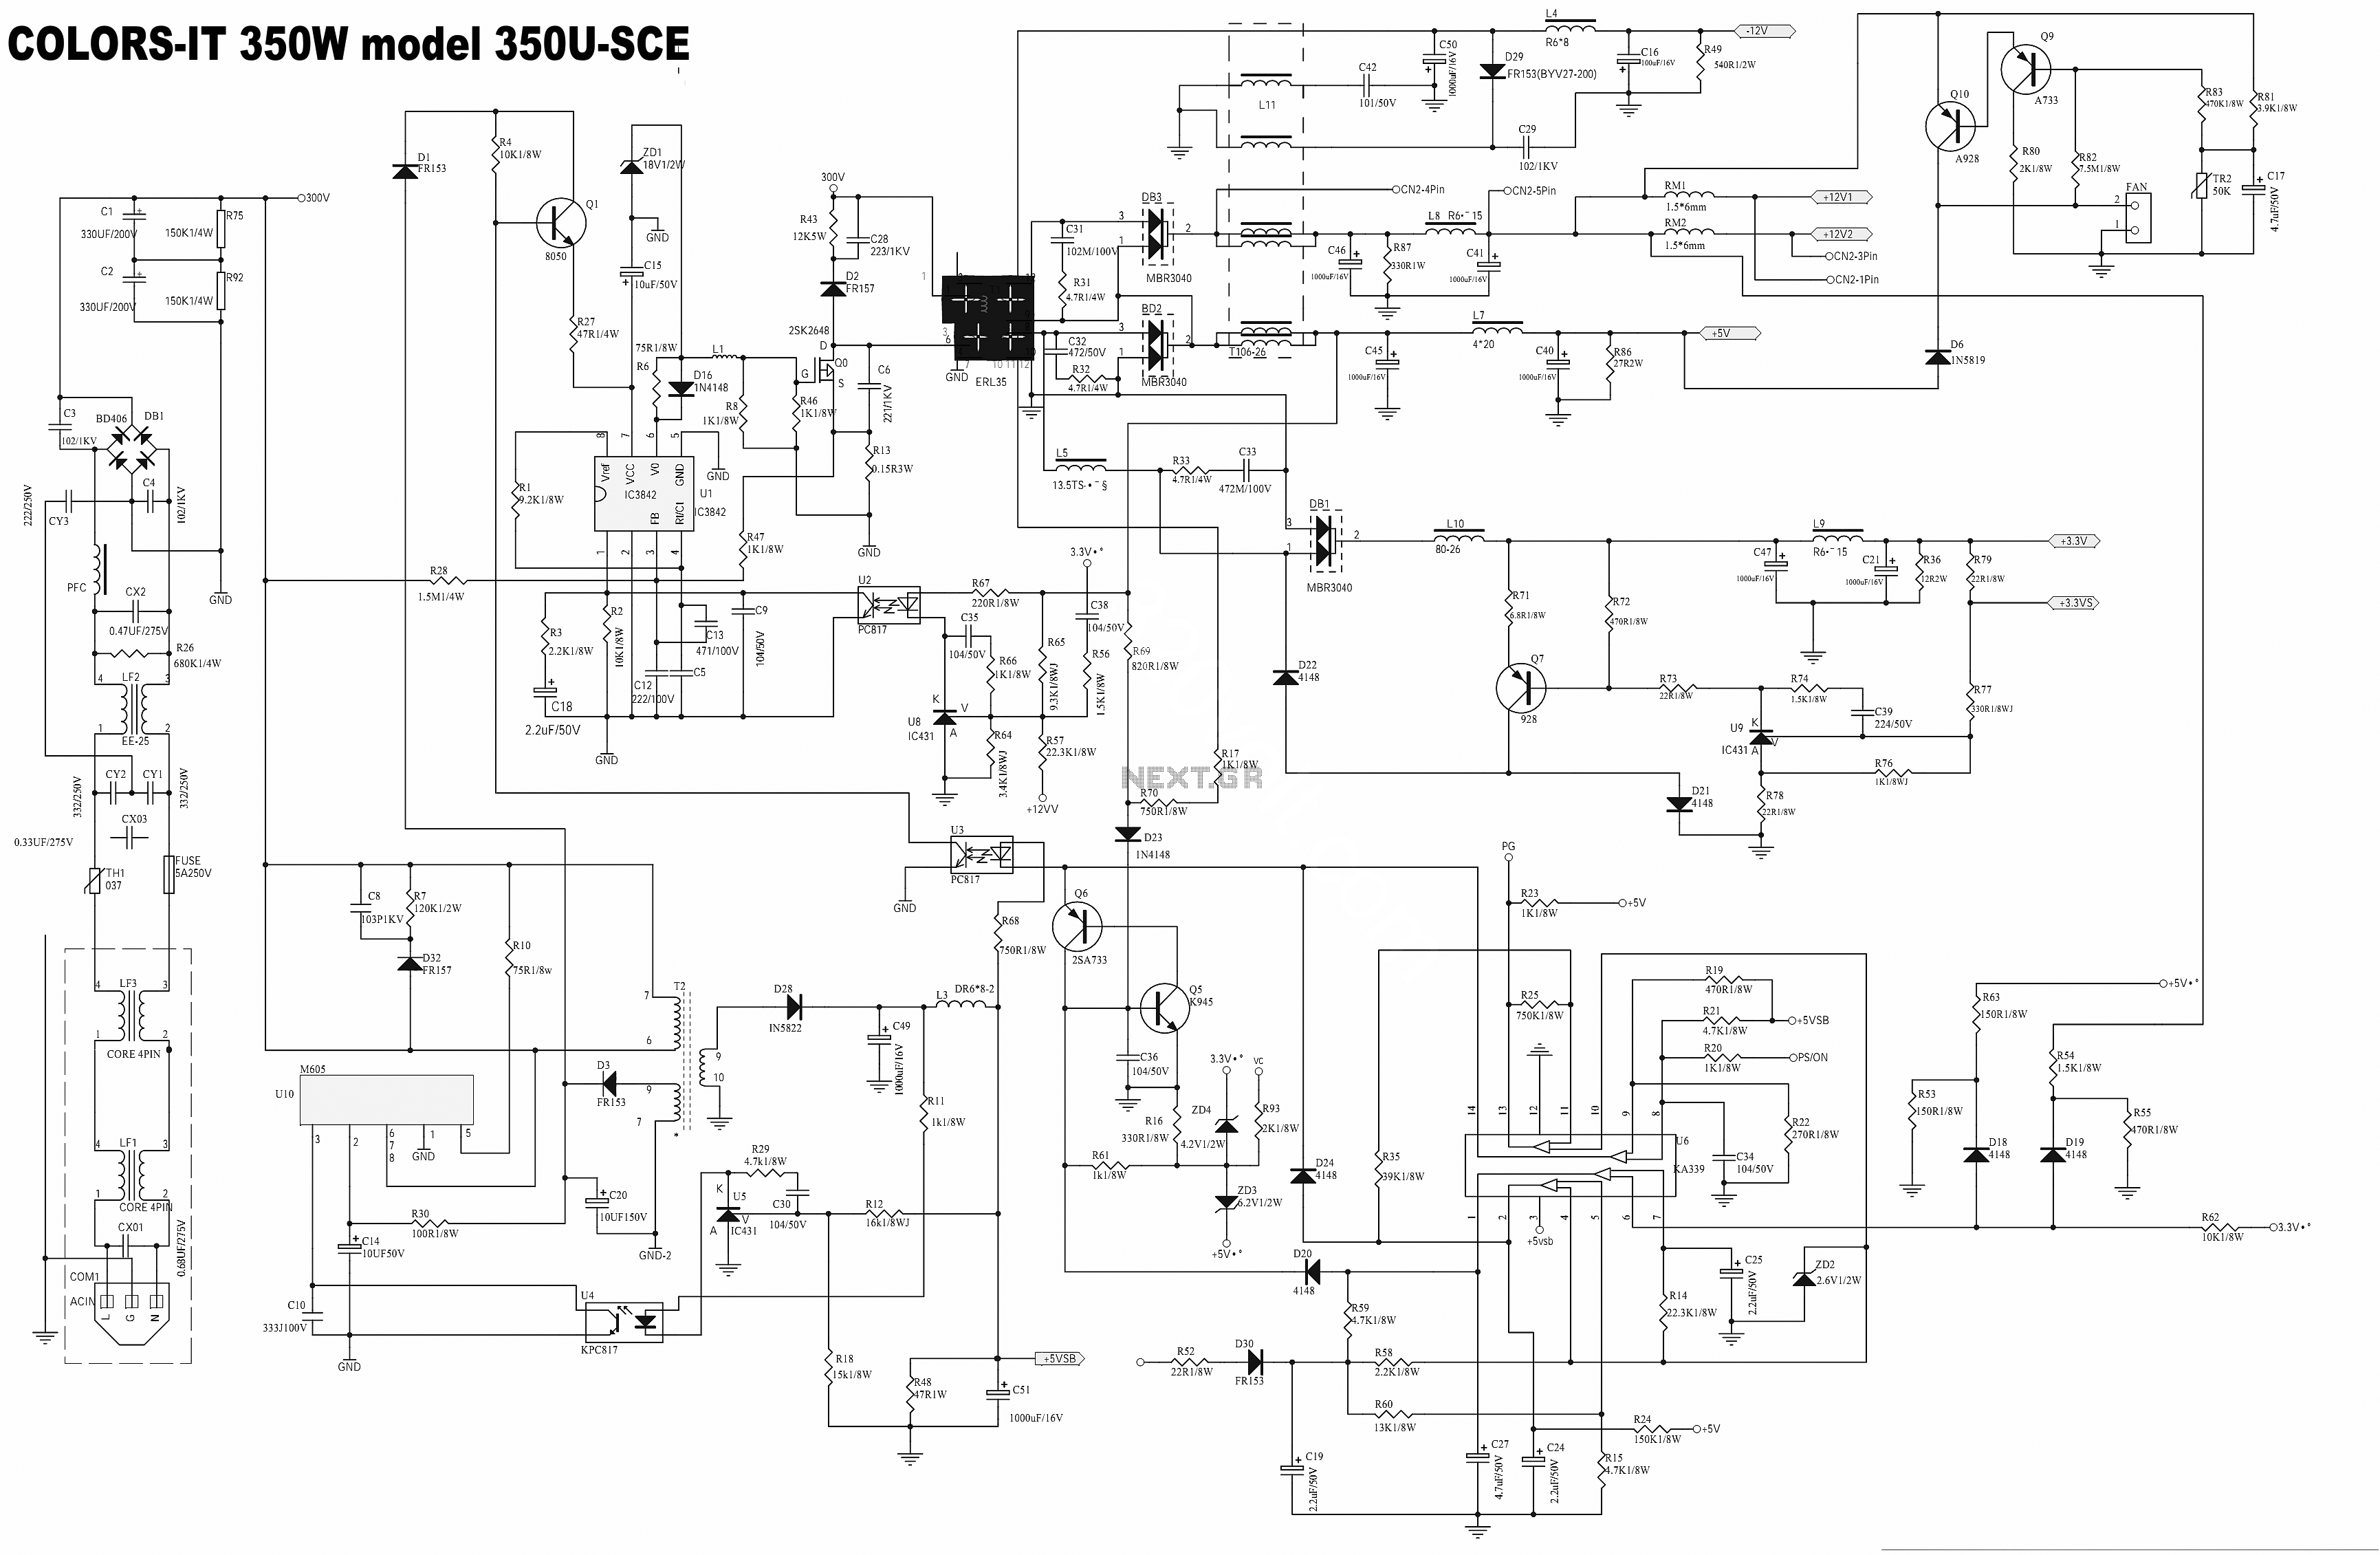 uc3842 m605 ka339 350usce smps atx circuit diagram circuit diagram uc3842b pdf circuit diagram with labels \u2022 45 63 74 91  at gsmportal.co